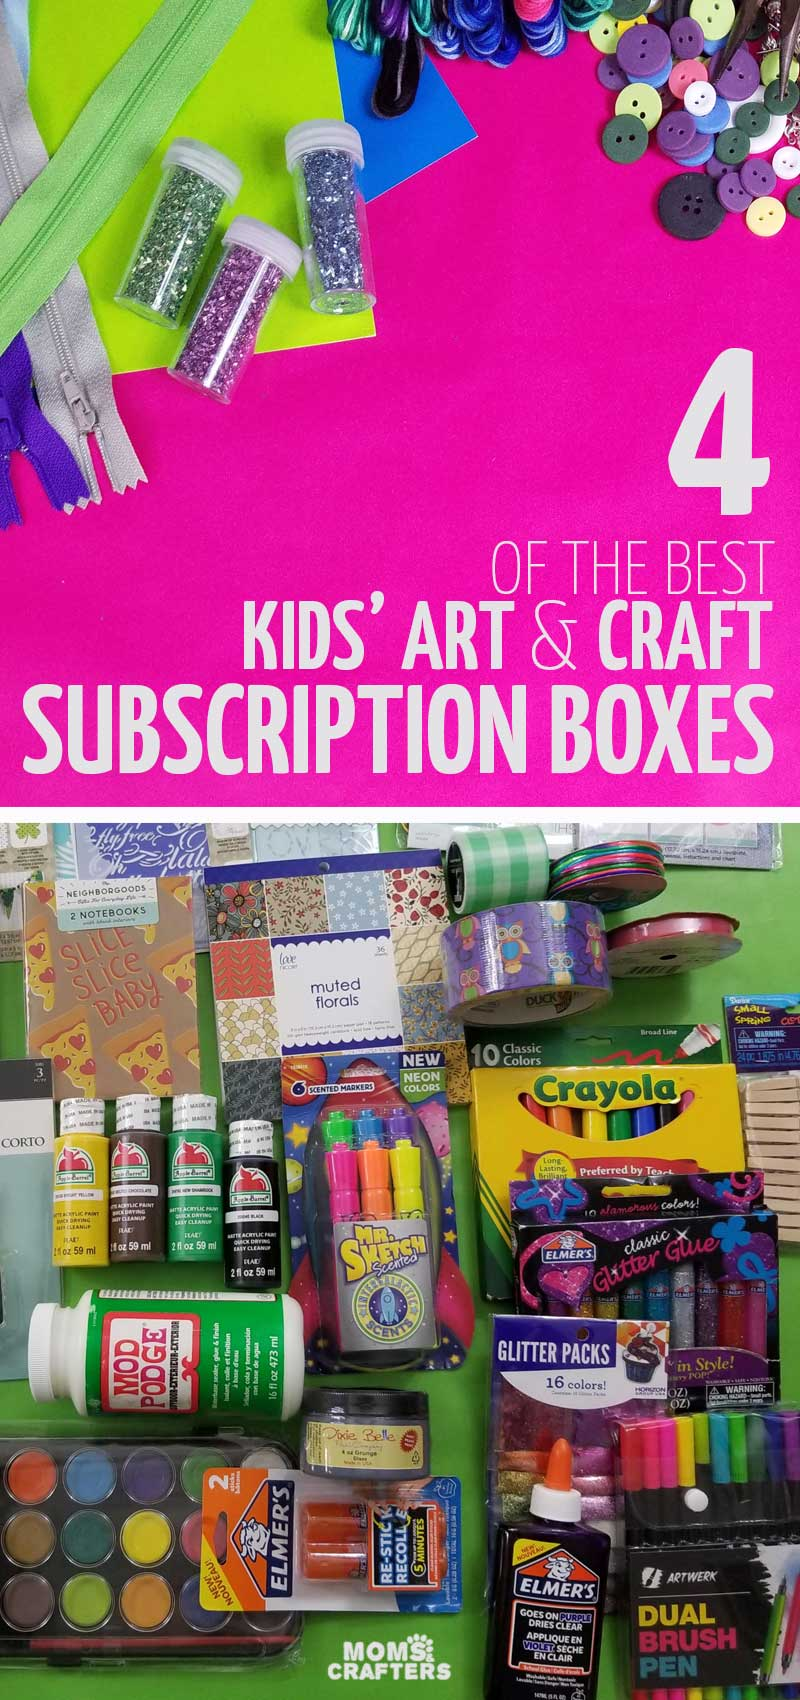 The best kids craft subscription boxes for kids of all ages - toddlers, preschoolers, grade school age, tween and teen! This includes monthly STEM and STEAM activities, arts and crafts perfect for weekends